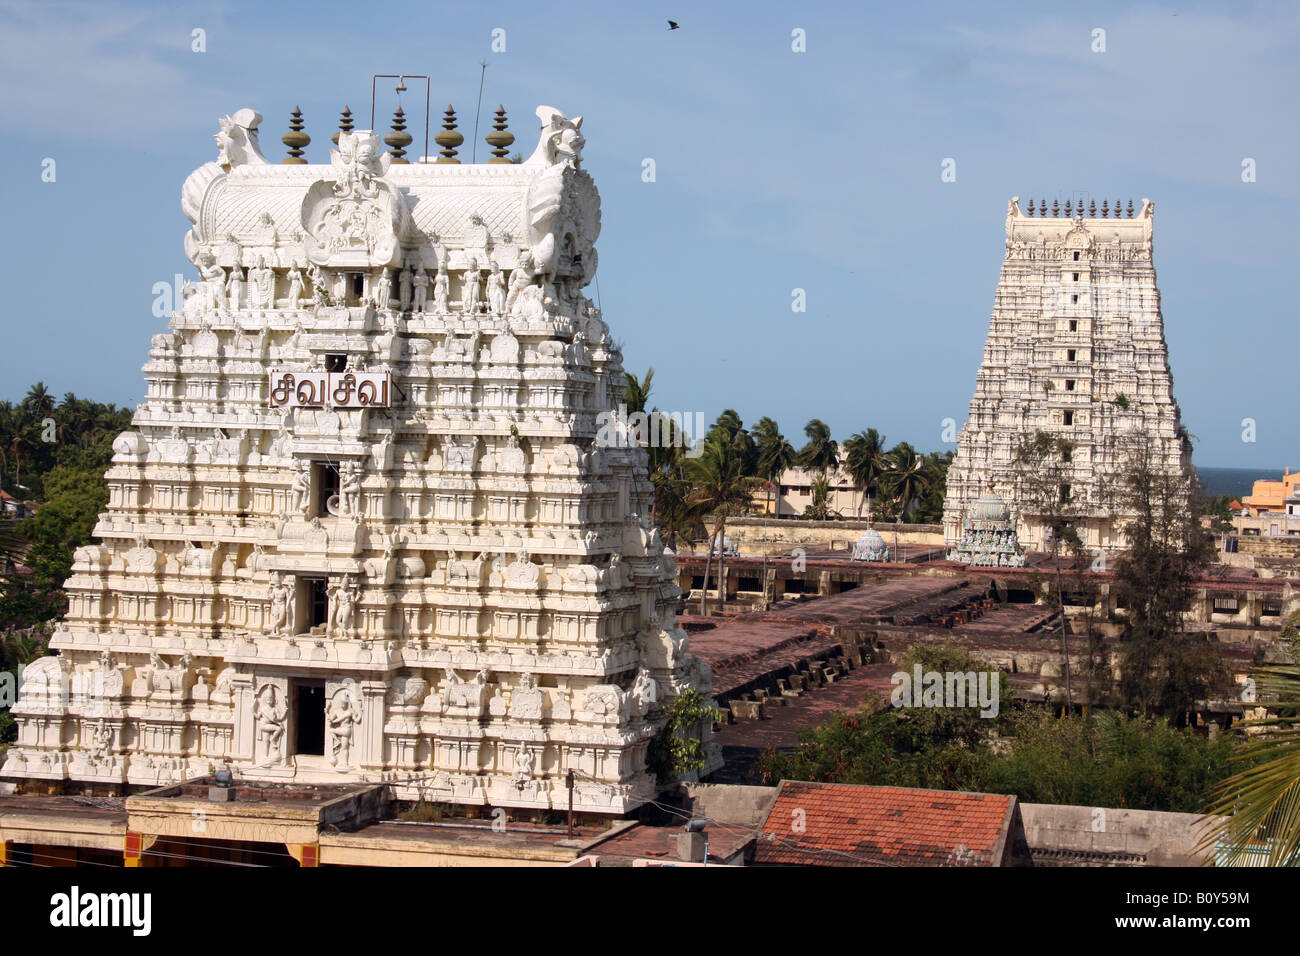 Image result for free image of rameswaram